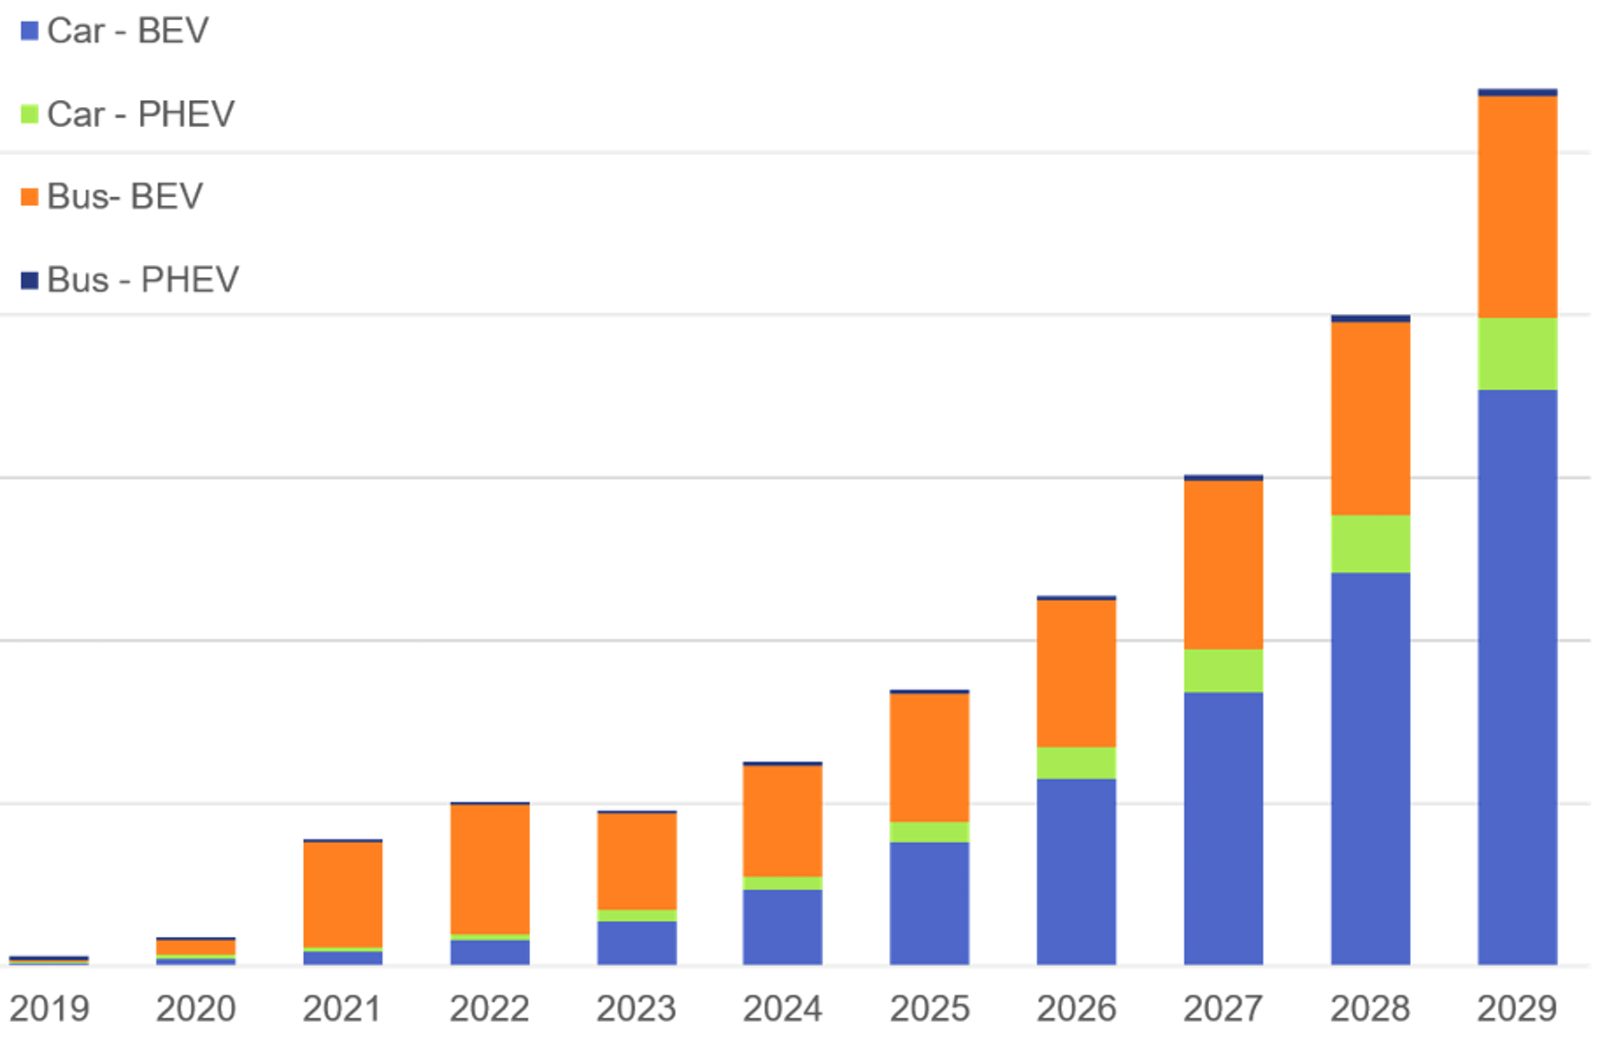 Second-life Electric Vehicle Batteries 2019-2029: IDTechEx